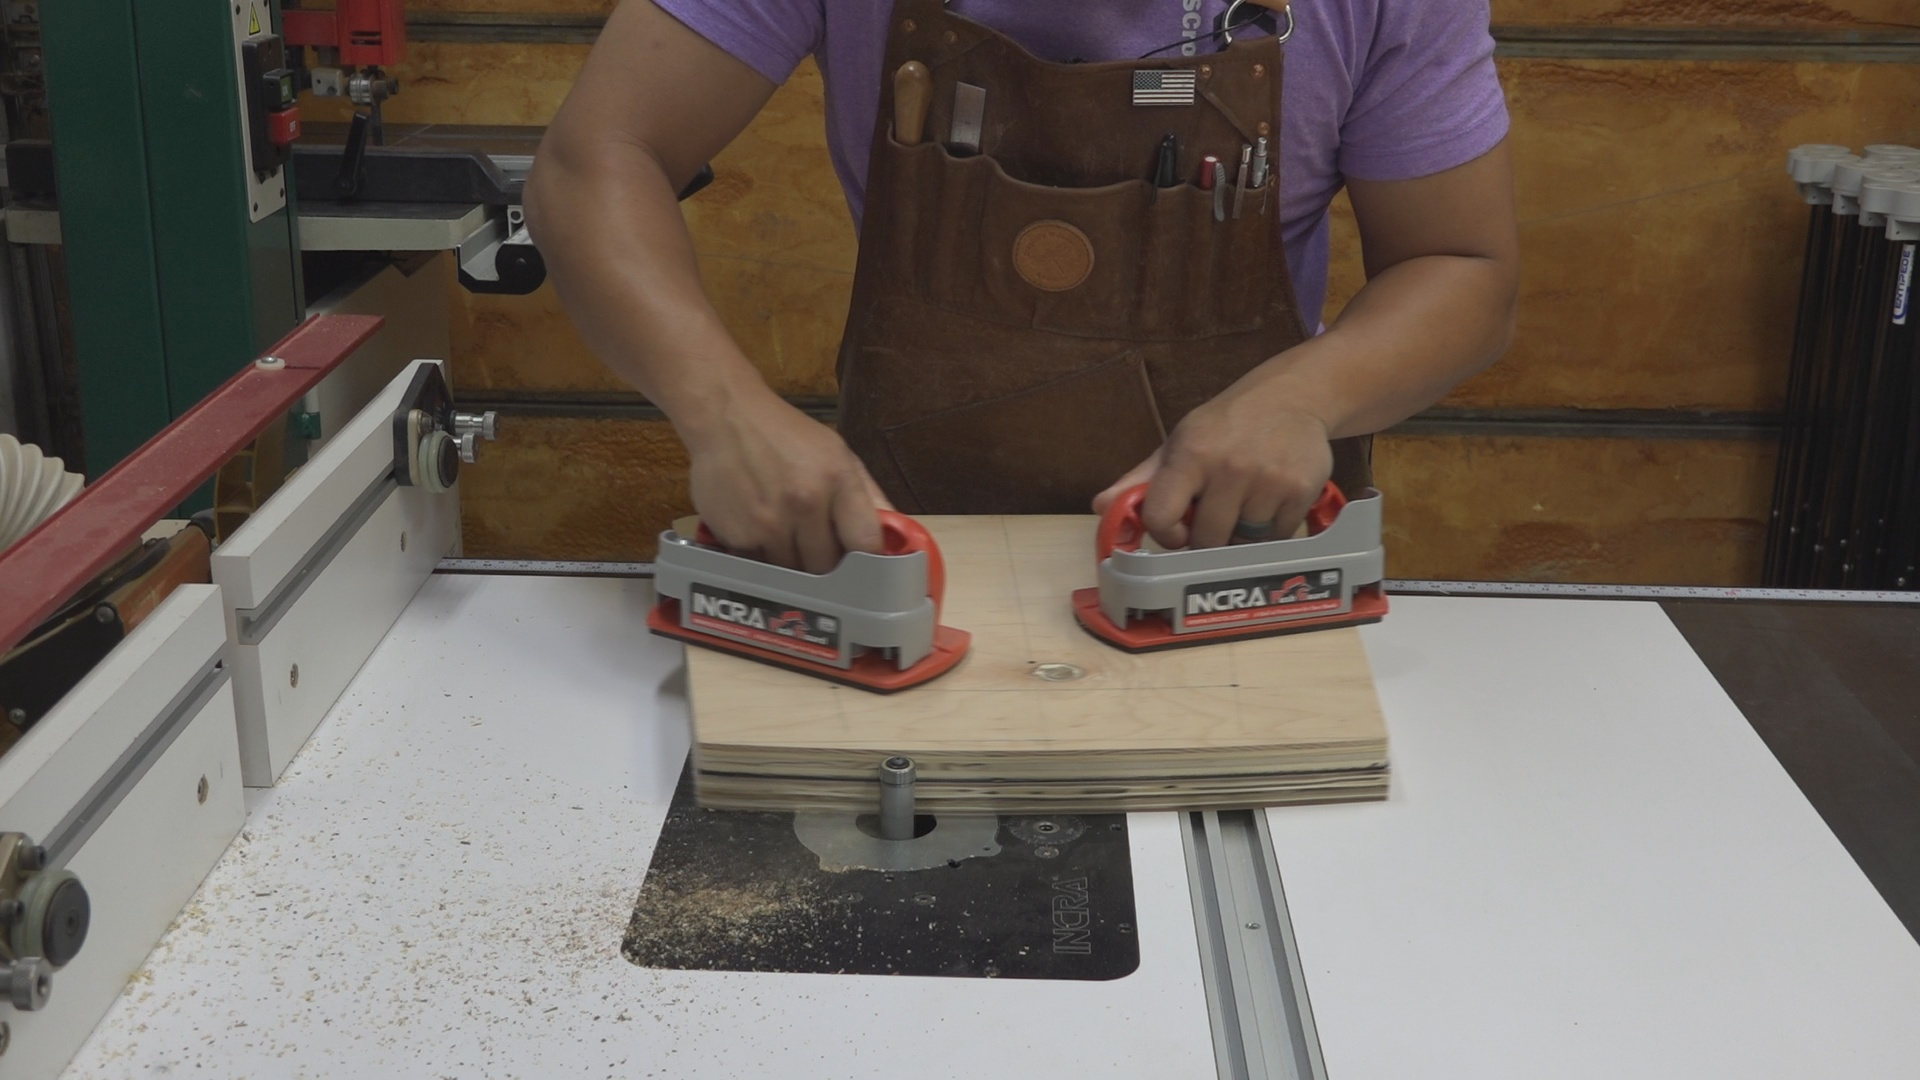 Cutting the final shape on the router table using a pattern router bit.